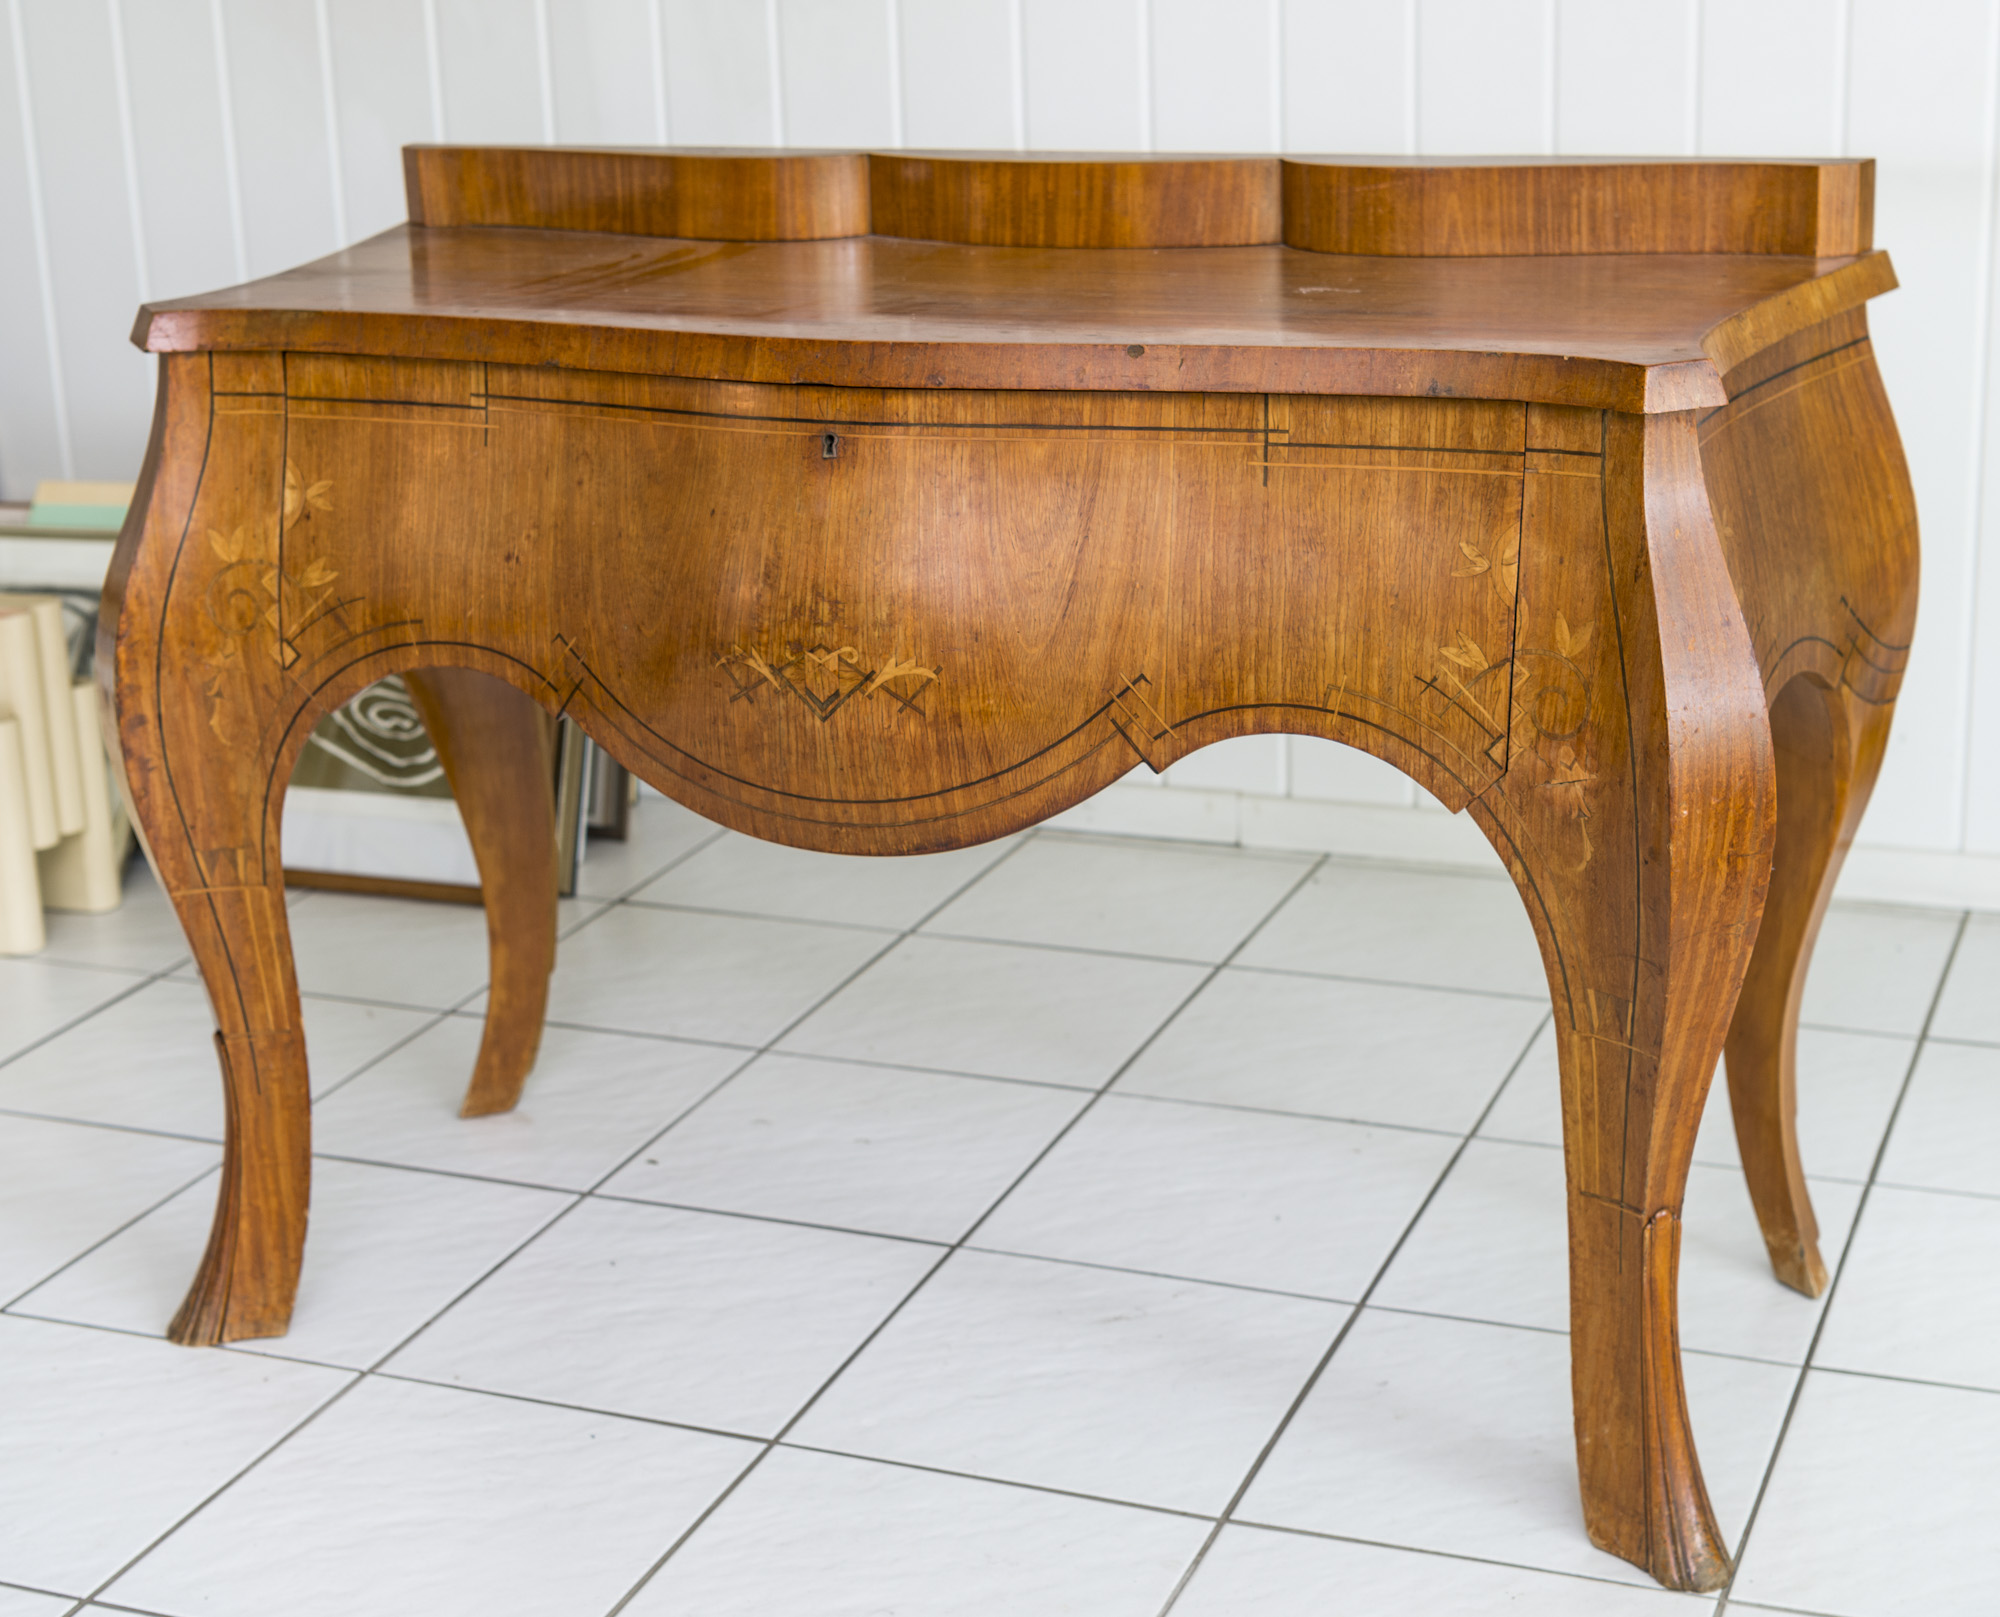 Peachy French Art Deco Console Table Made Of Cherry Wood Bralicious Painted Fabric Chair Ideas Braliciousco